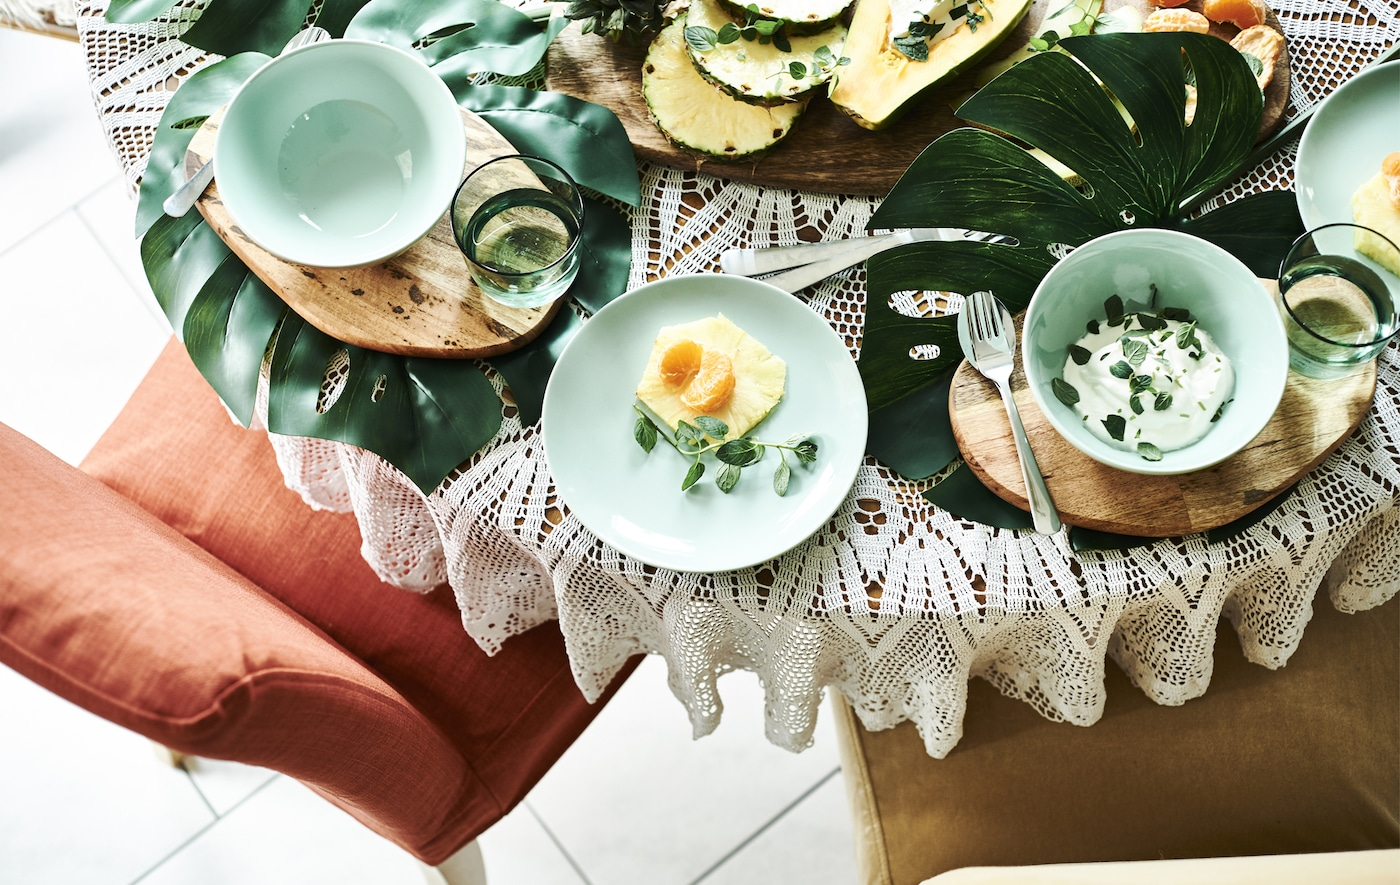 Fruit and yoghurt served on a table setting with large leaves, wooden boards and green dinnerware.